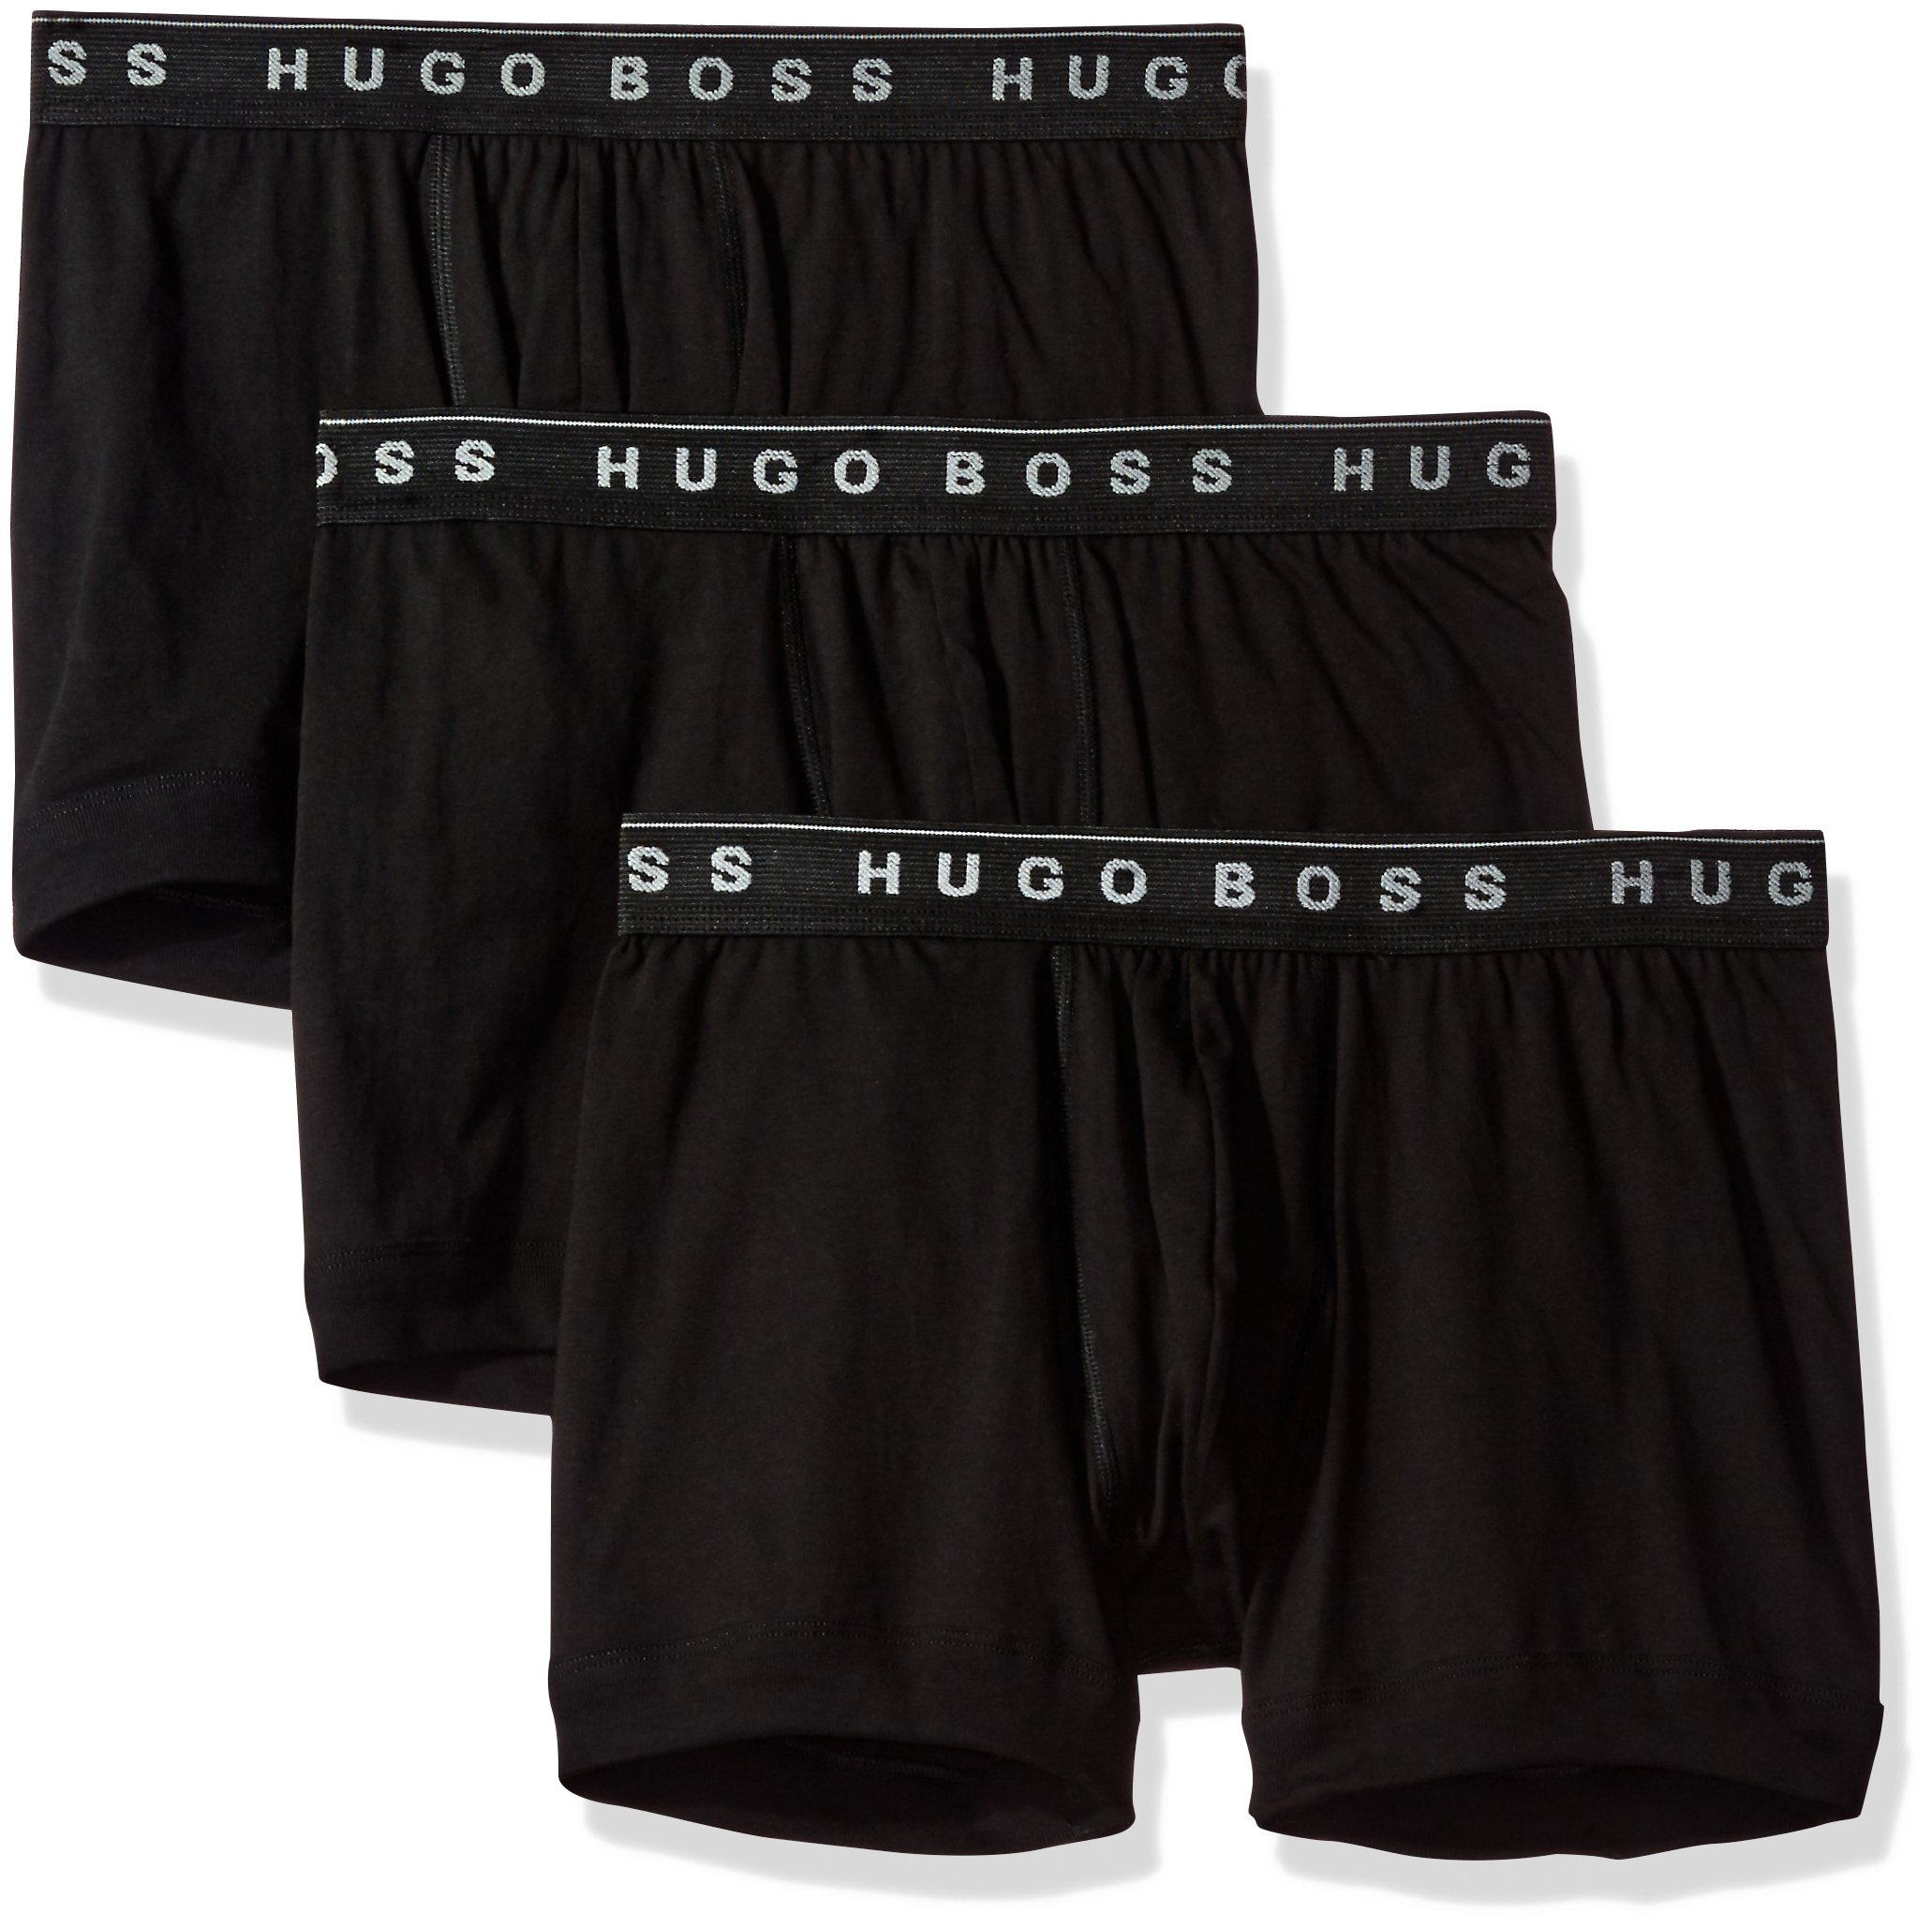 Hugo Boss BOSS Men's 3-Pack Cotton Boxer Brief, New Black, Large